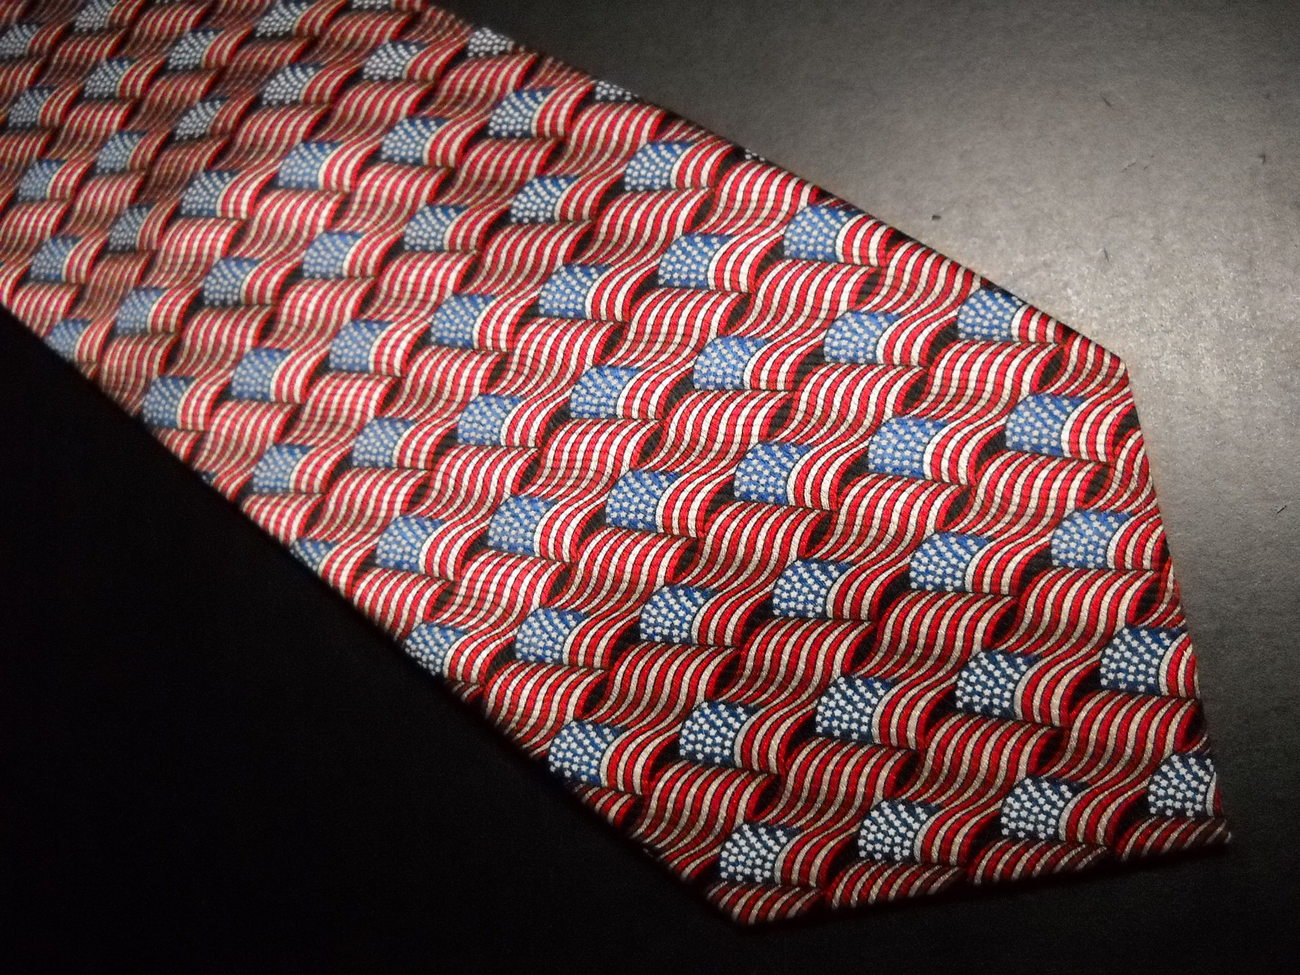 Stanley Blacker Neck Tie Repeating American Flags Red White and Blue Silk